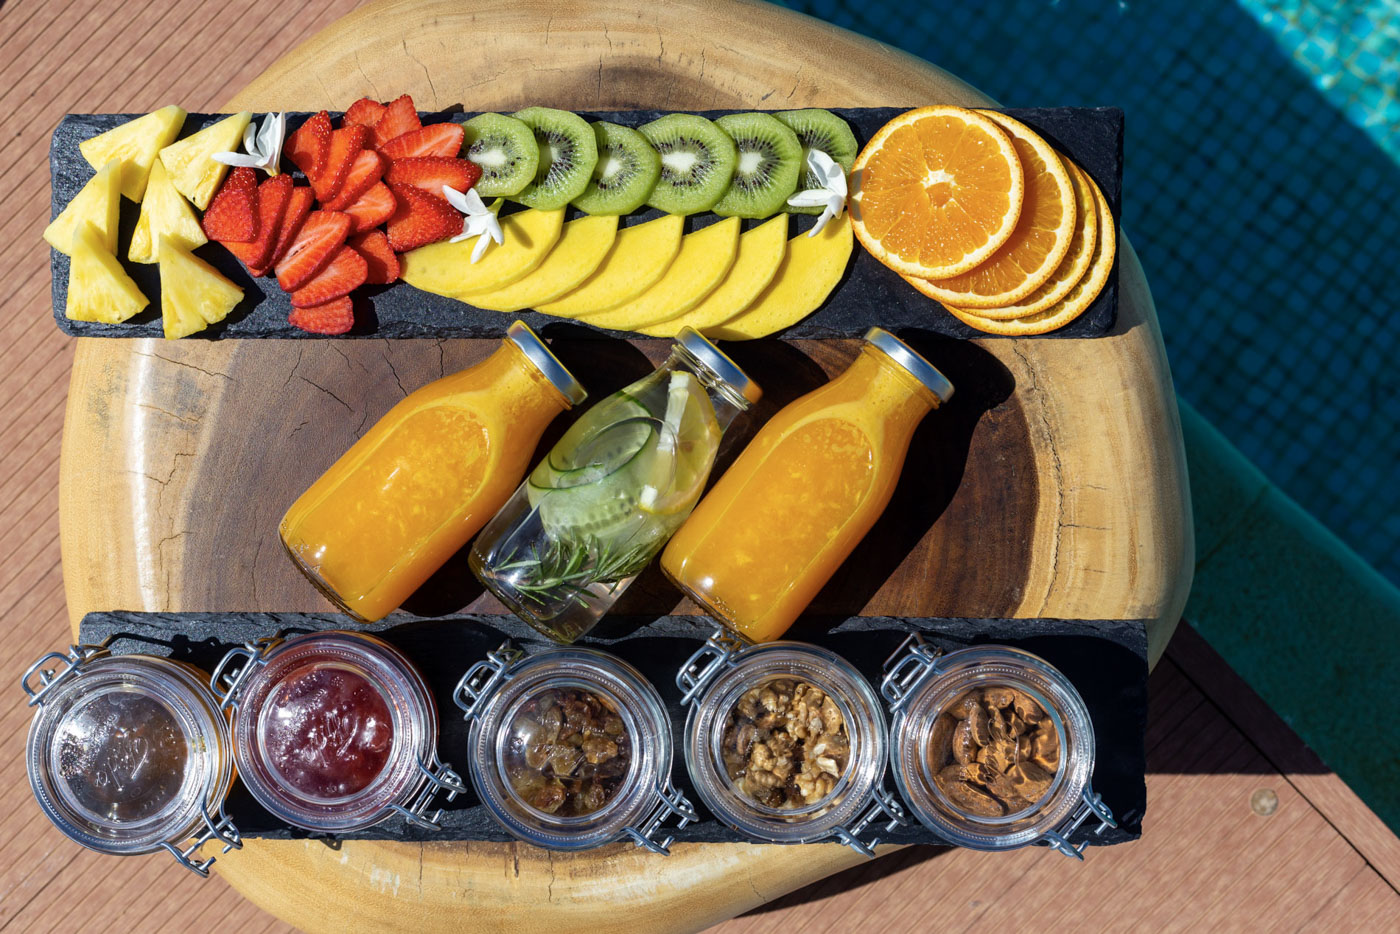 Elysian luxury hotel and spa Kalamata breakfast with fruits and juices